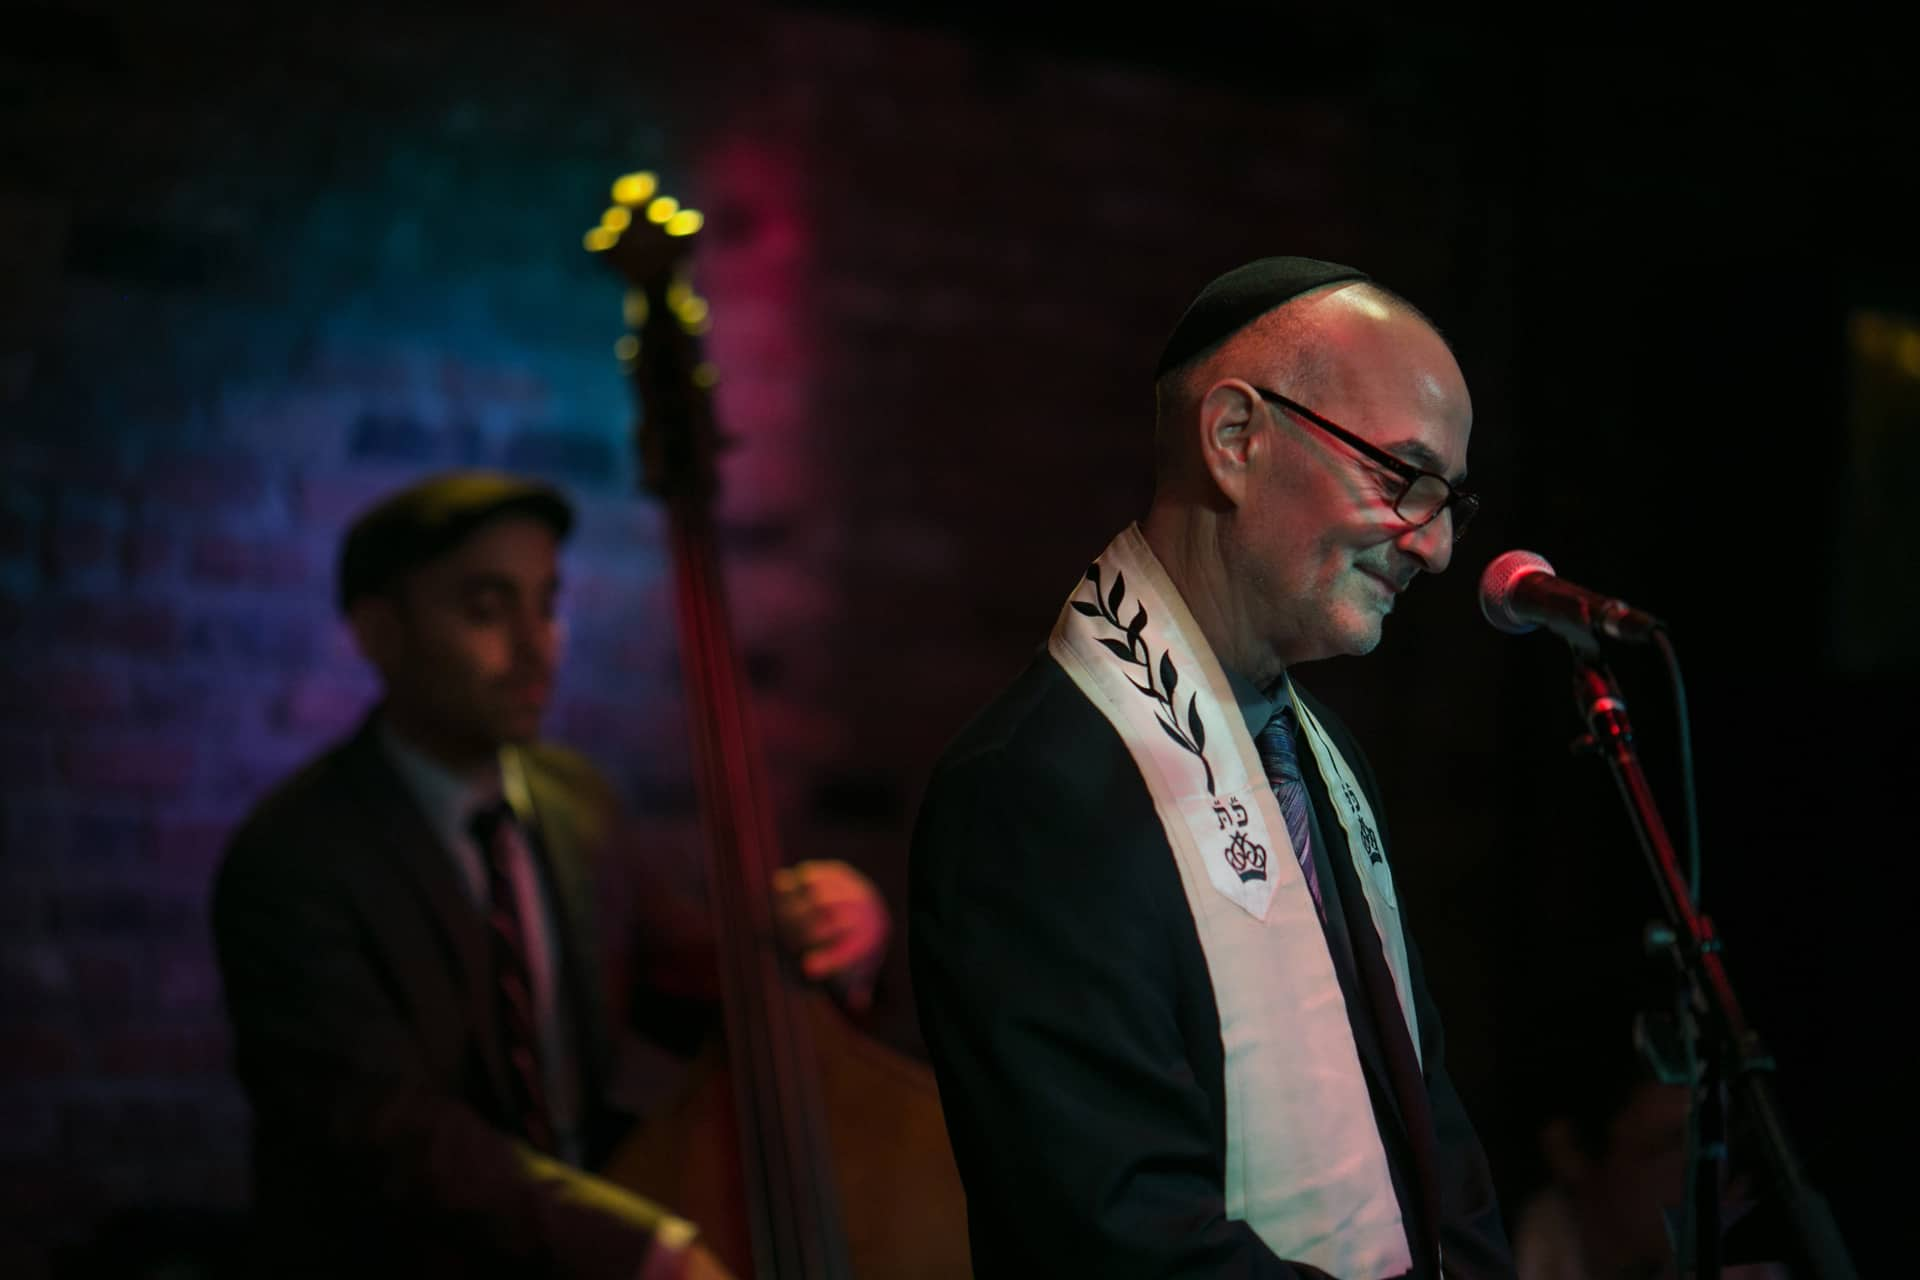 Rabbi-Steven-Blane-Founder-of-the-online-synagogue-Sim-Shalom-Holds-Rosh-Hashana-Services-at-The-Bitter-End-in-Greenwich-Village-Credit-to-William-Alatriste-image-29